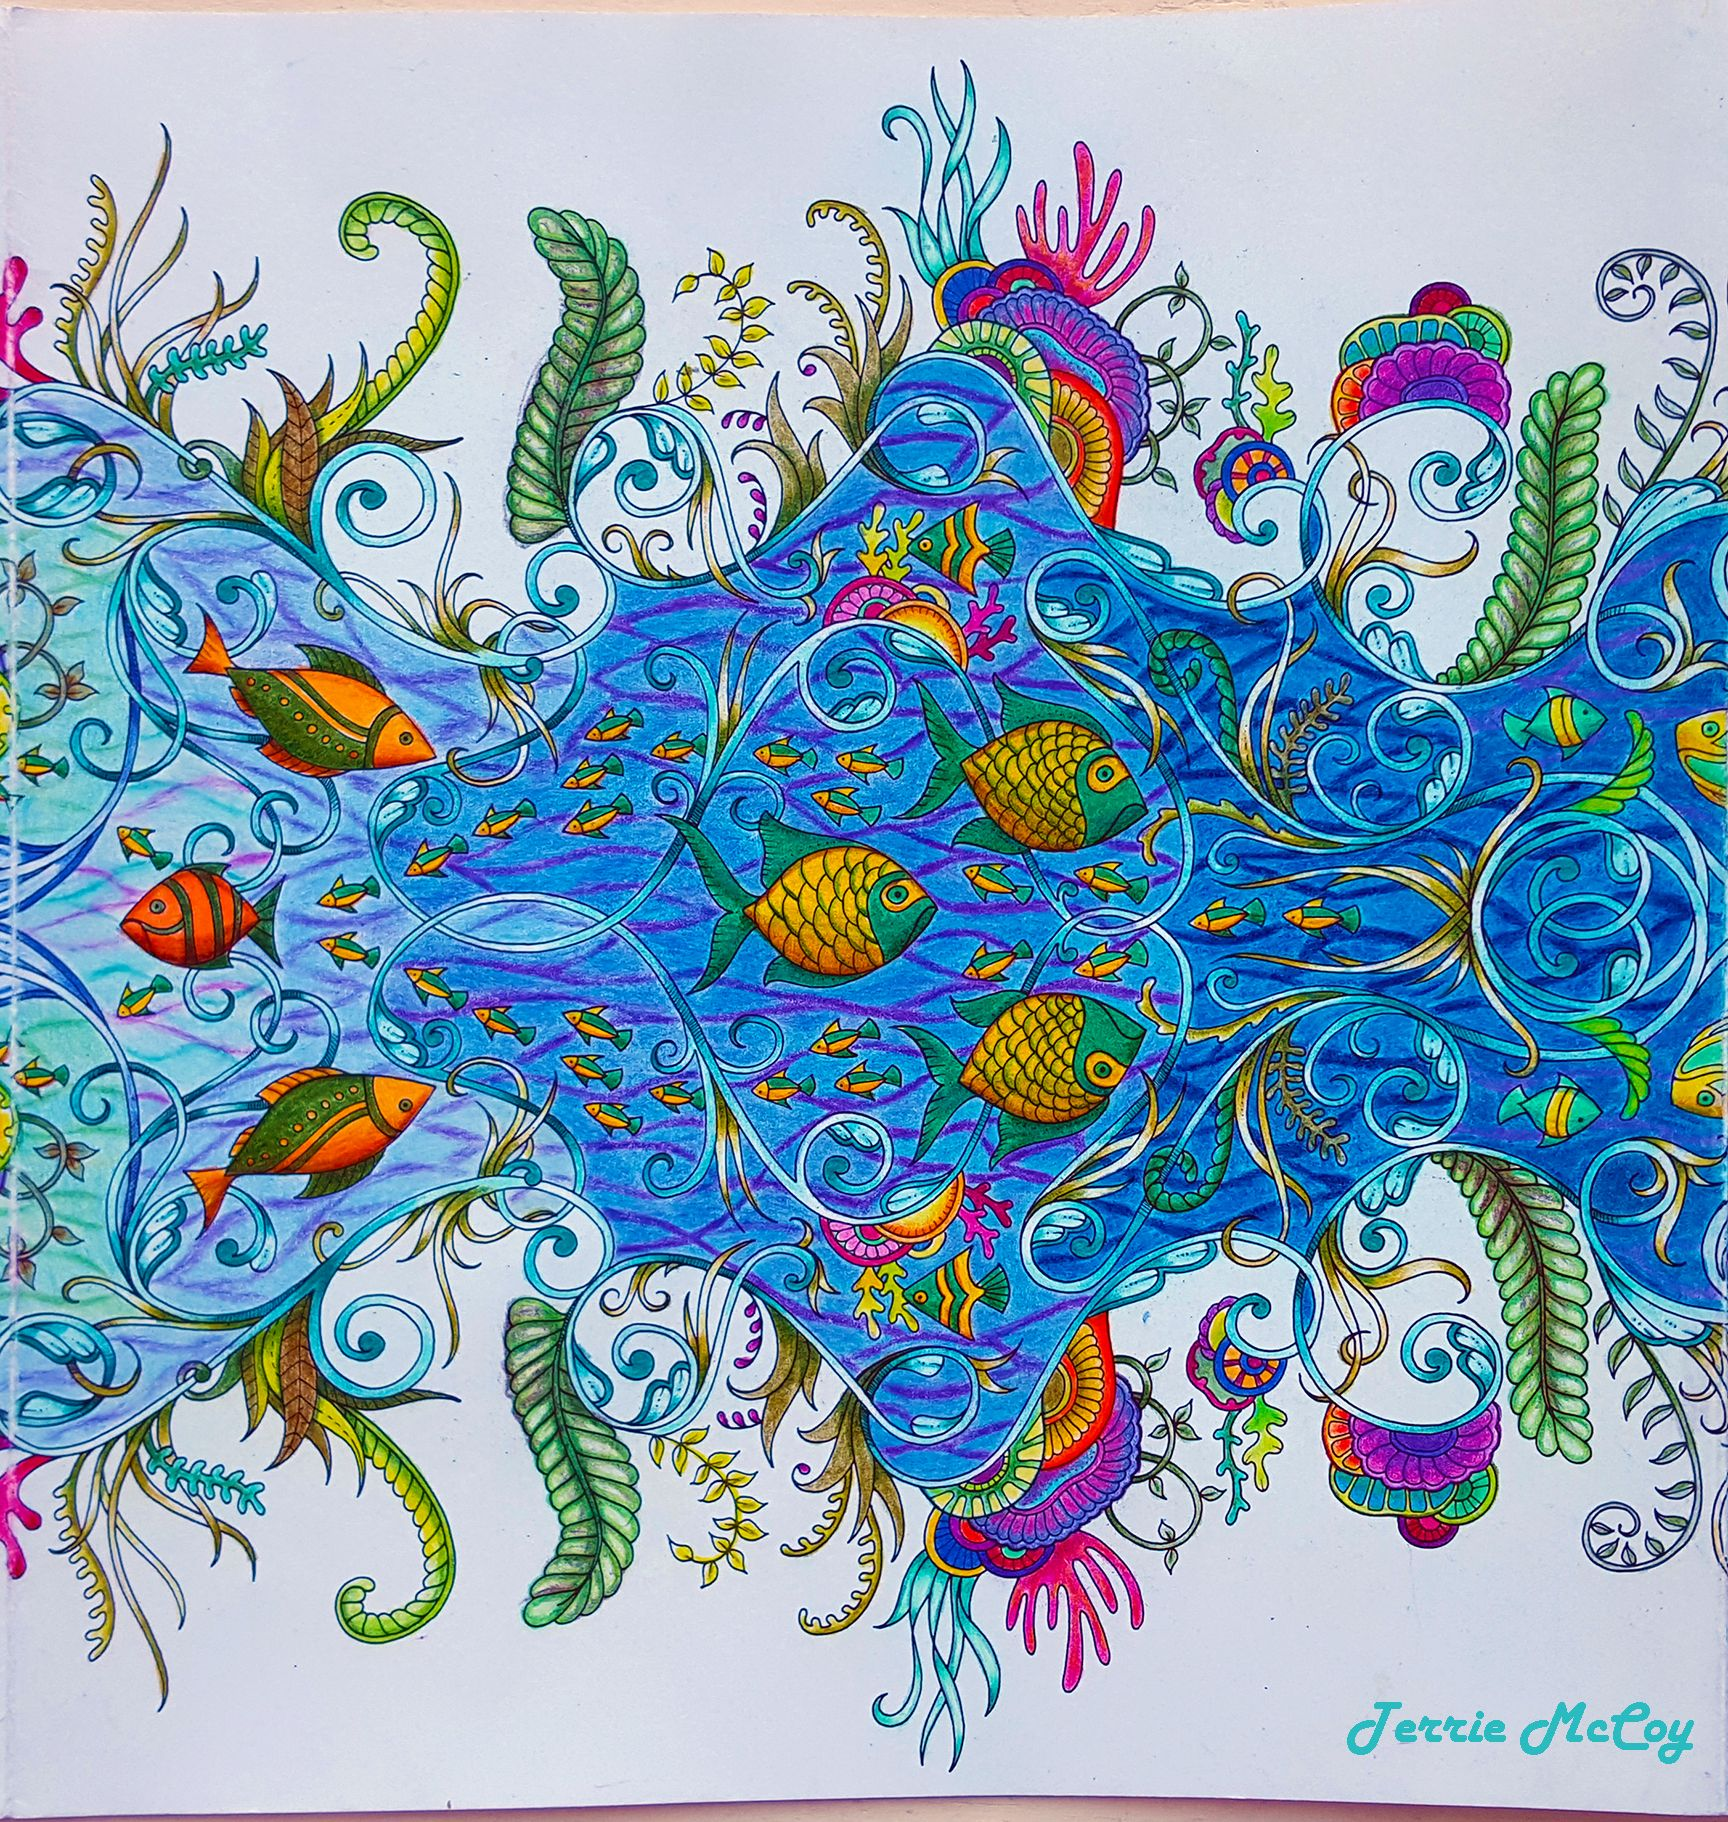 The Lost Ocean Coloring Book Lovely 1000 Images About Lost Ocean Coloring Book On Pintere Lost Ocean Coloring Book Mermaid Coloring Book Mermaid Coloring Pages